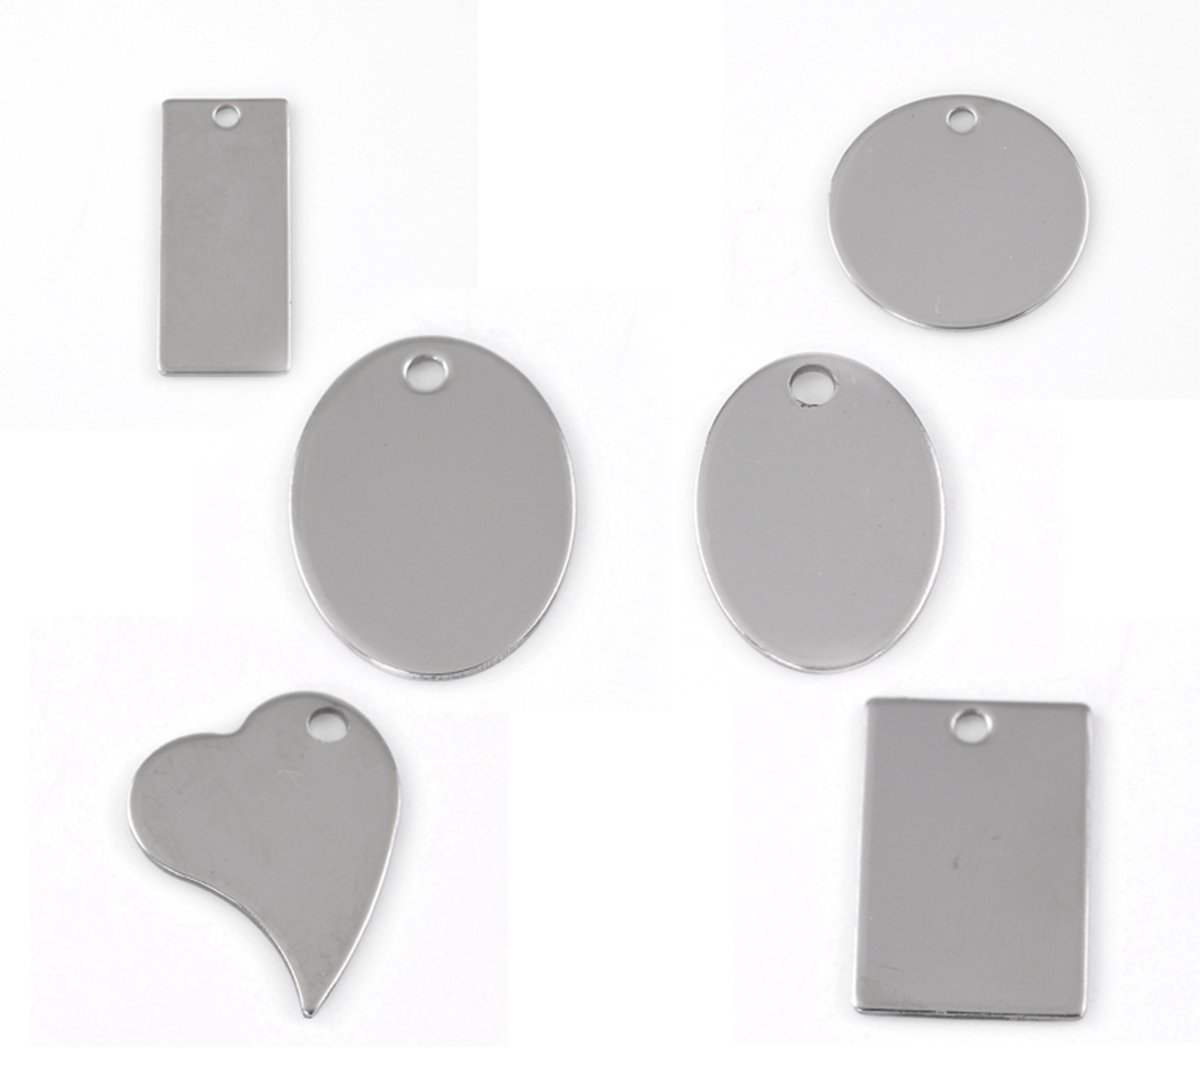 30pcs Silver Tone Stainless Steel Blank Stamping Tags Mixed Shape Charm Pendants 24x17mm-38x16mm TY BETY22138